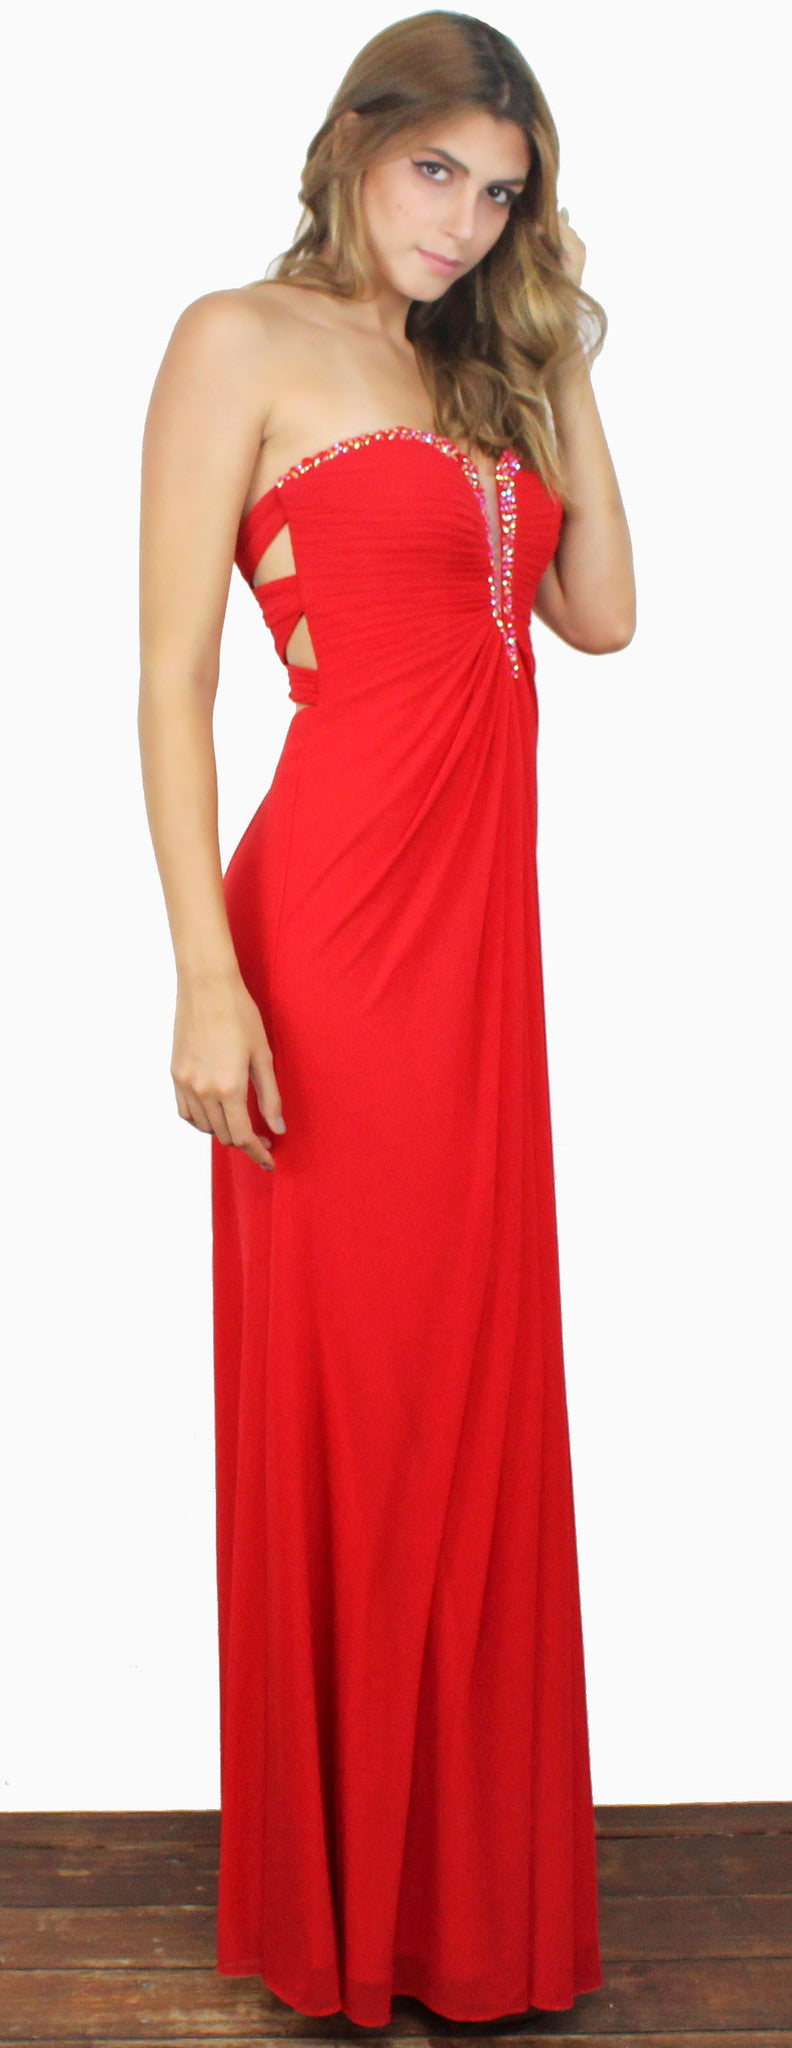 Red Queen Strapless Gown